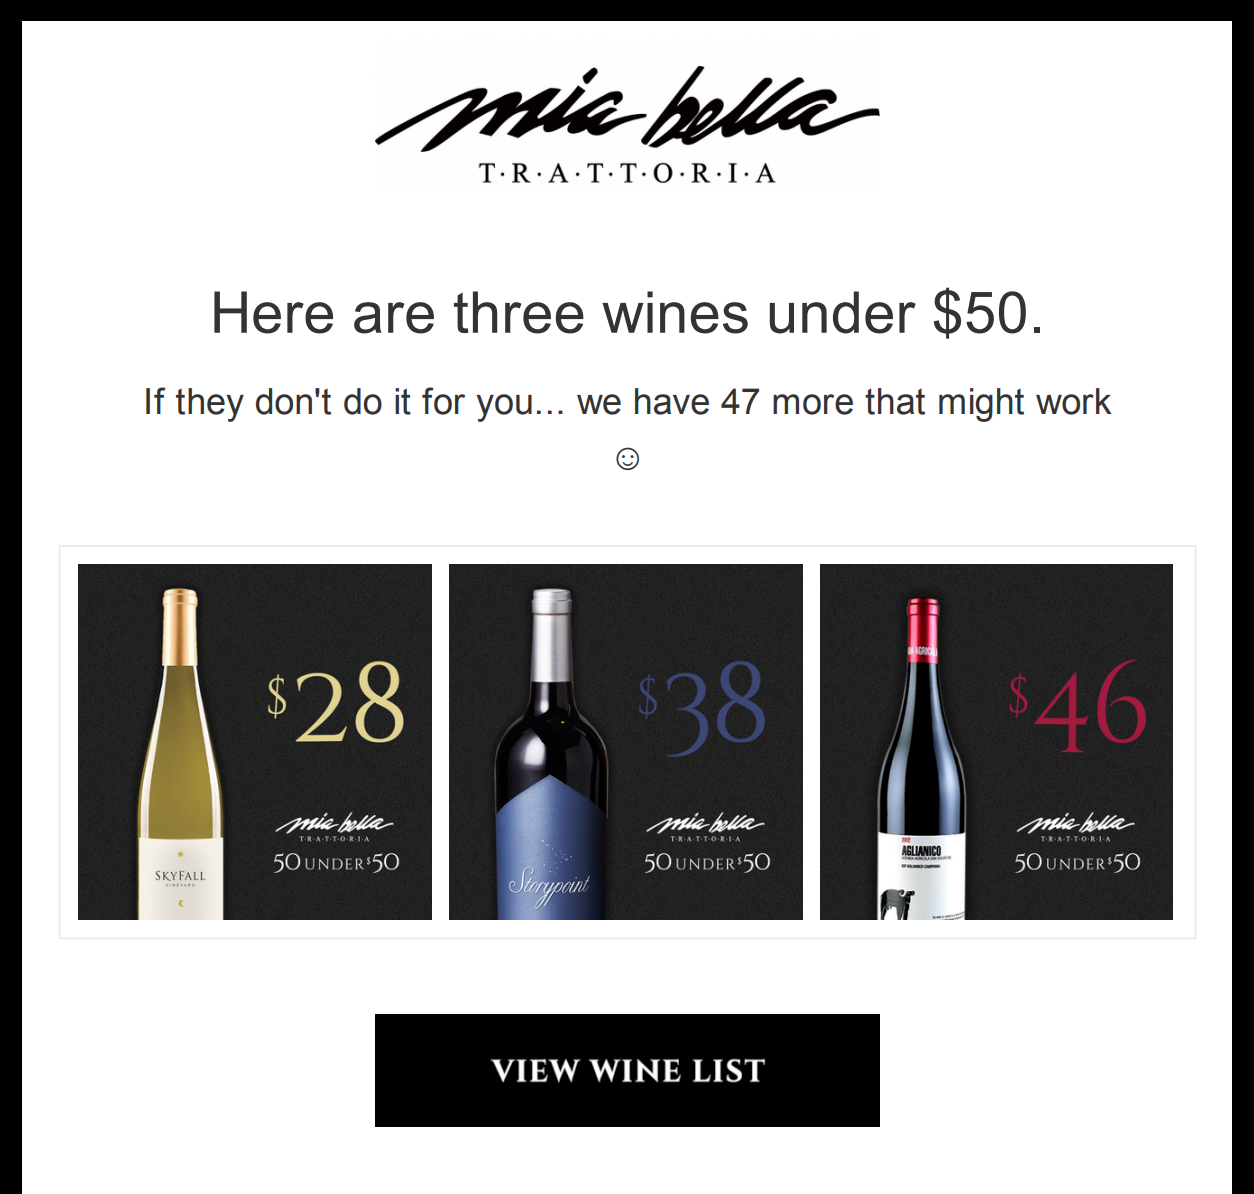 Score: 6.222% Open, 3% Clicks - Mia BellaHere's Three Wines Under $50